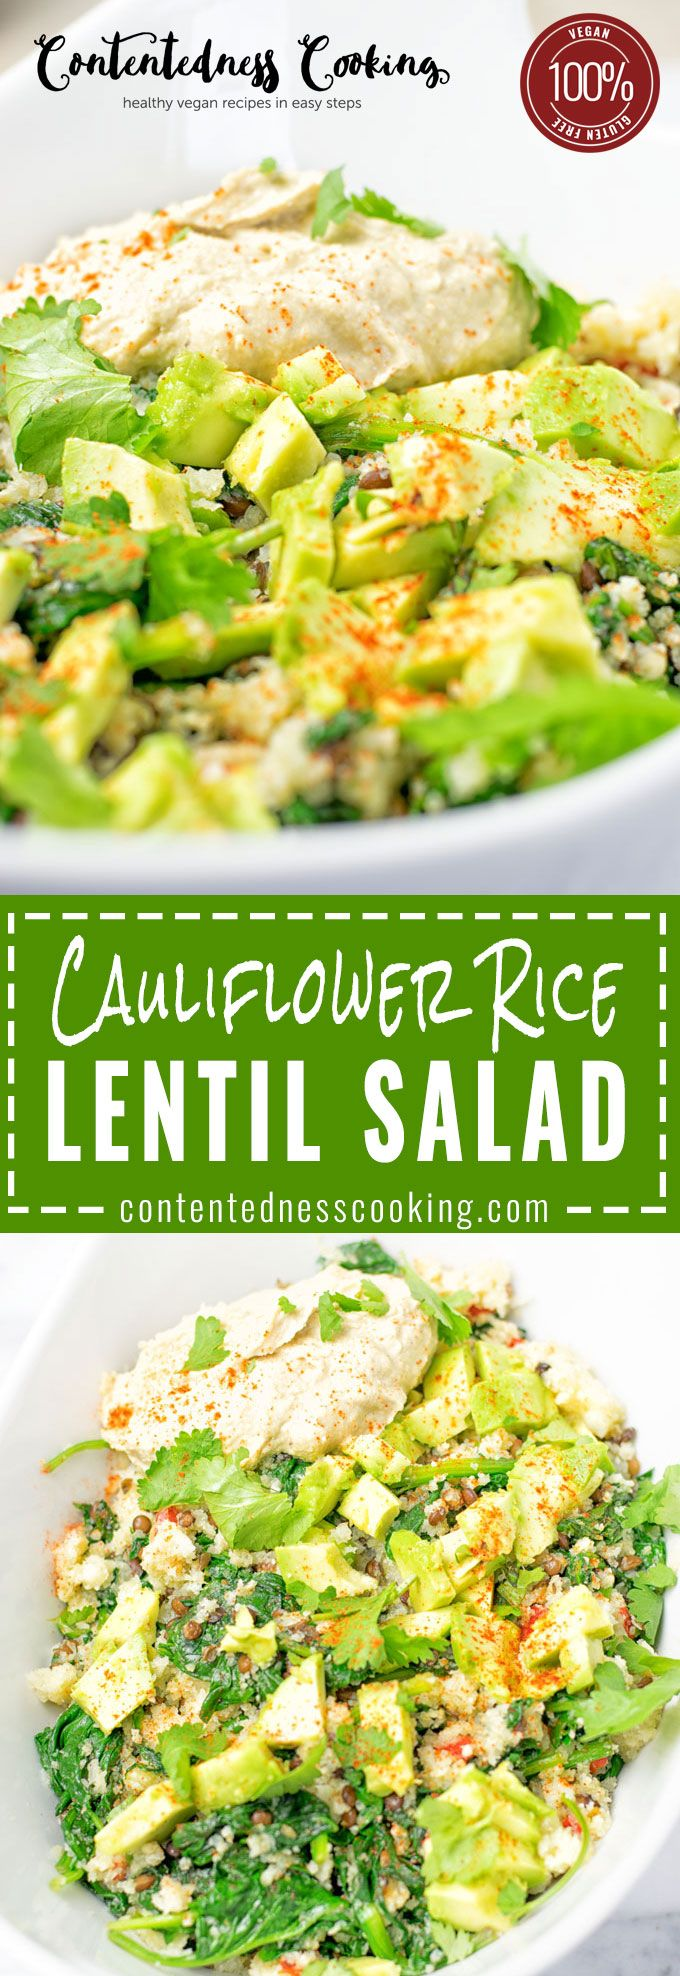 This Cauliflower Rice Lentil Salad is delicious and super easy infused with mediterran flavors. Only 6 ingredients, with cauliflower rice, fresh spinach, lentils and  homemade hummus. Makes an amazing appetizer, lunch or dinner, also vegan and gluten free.